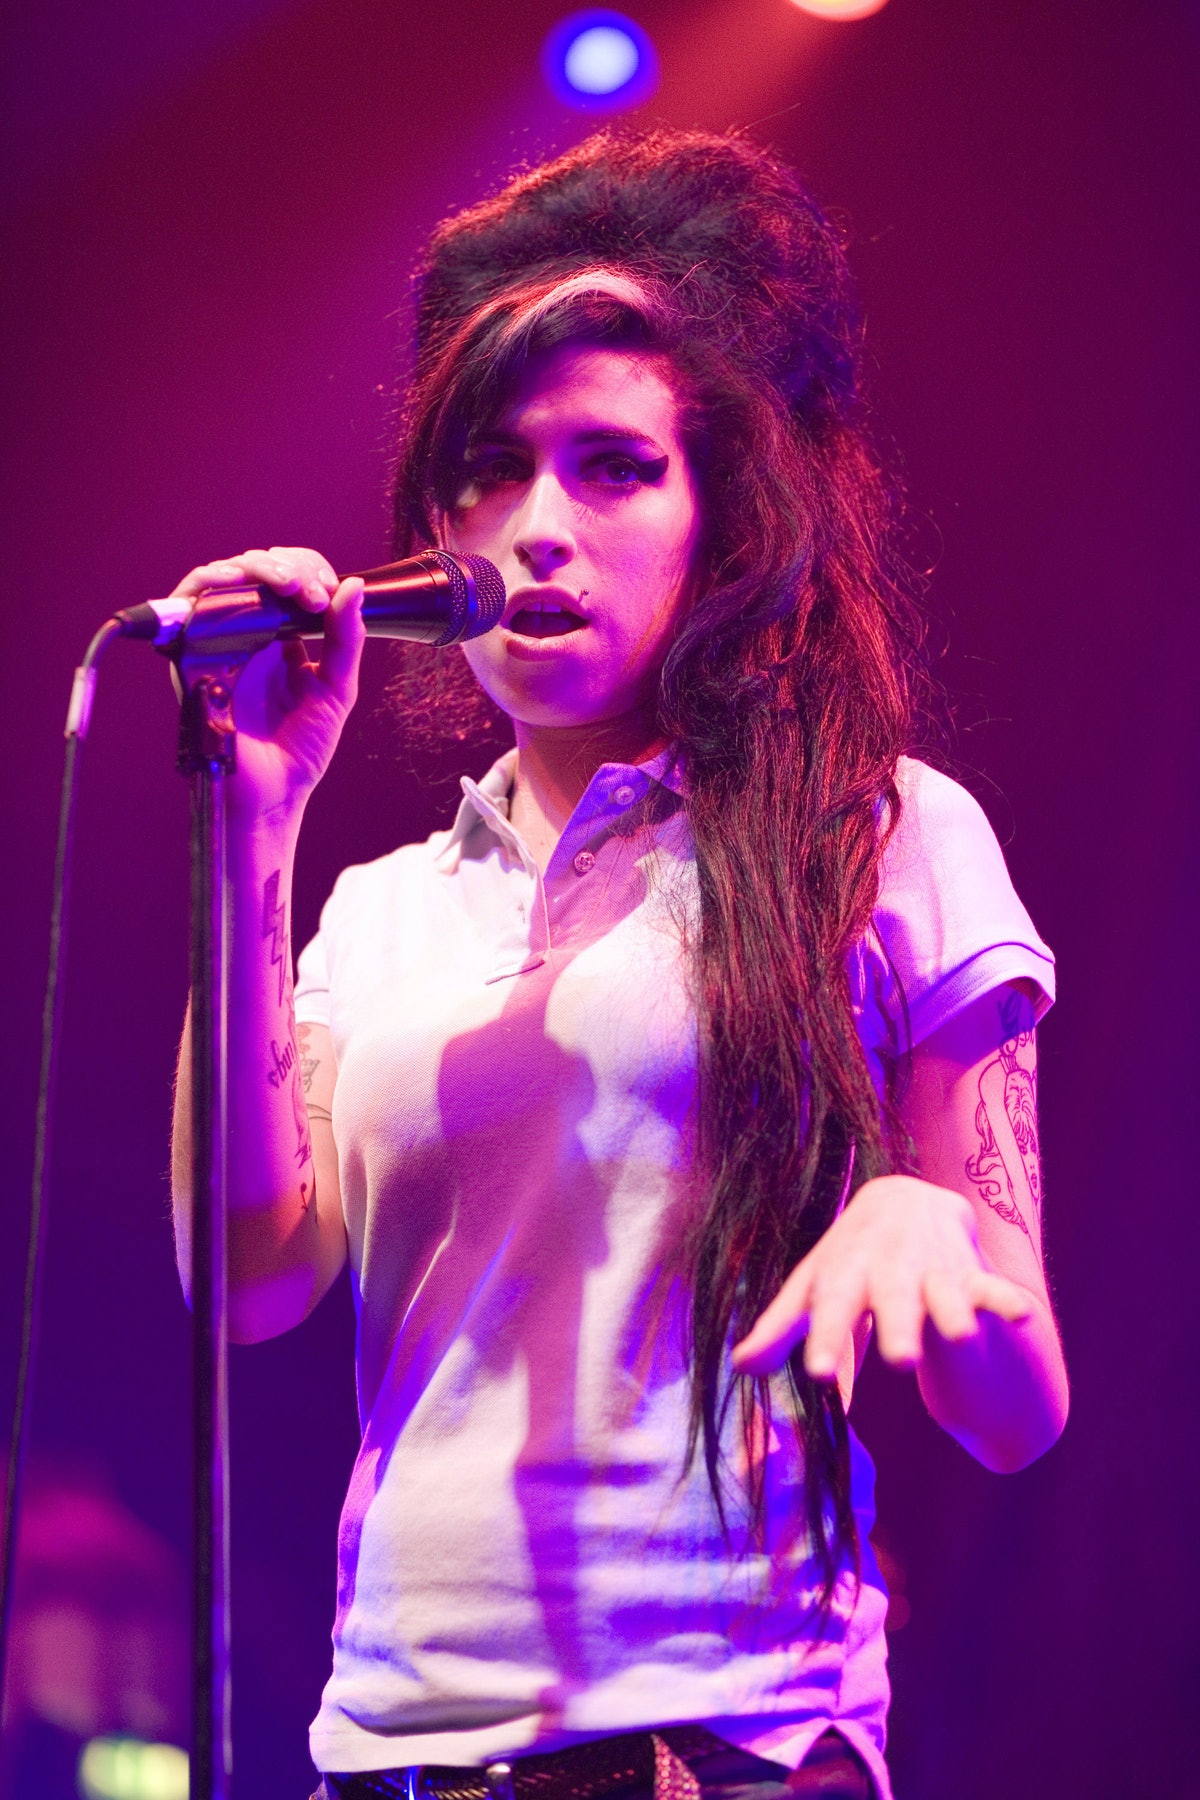 NME Tour - Amy Winehouse in Concert - February 19, 2007